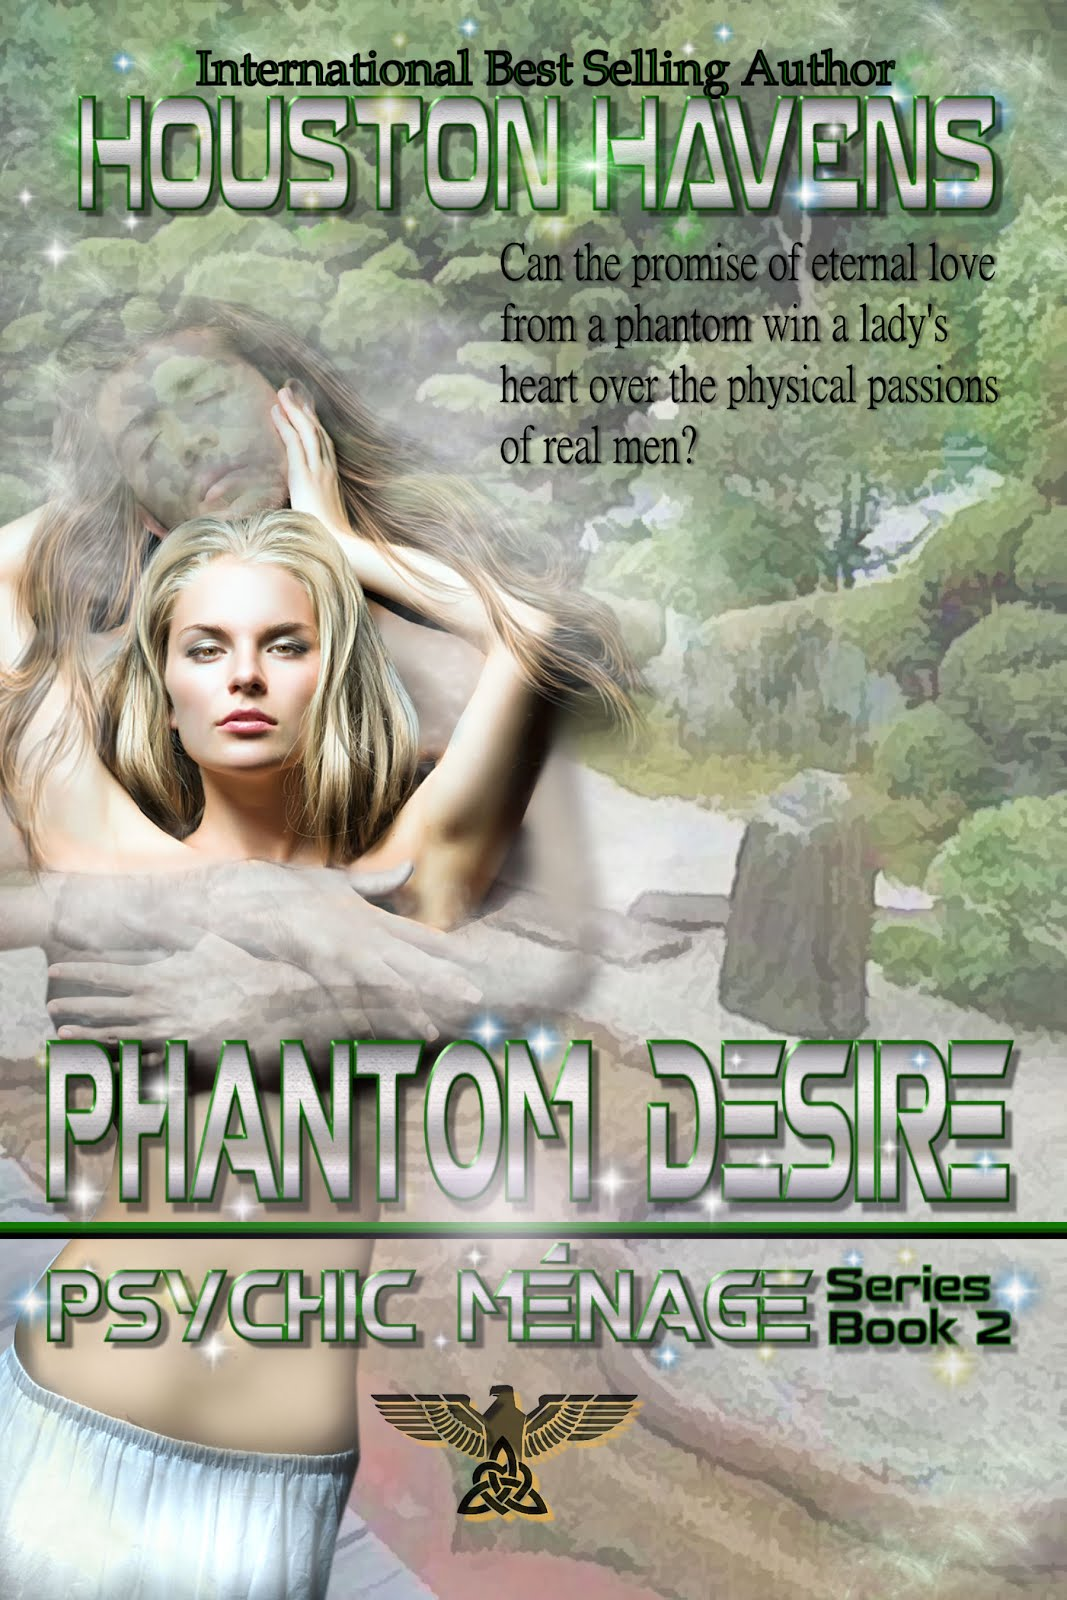 Phantom Desire by Houston Havens